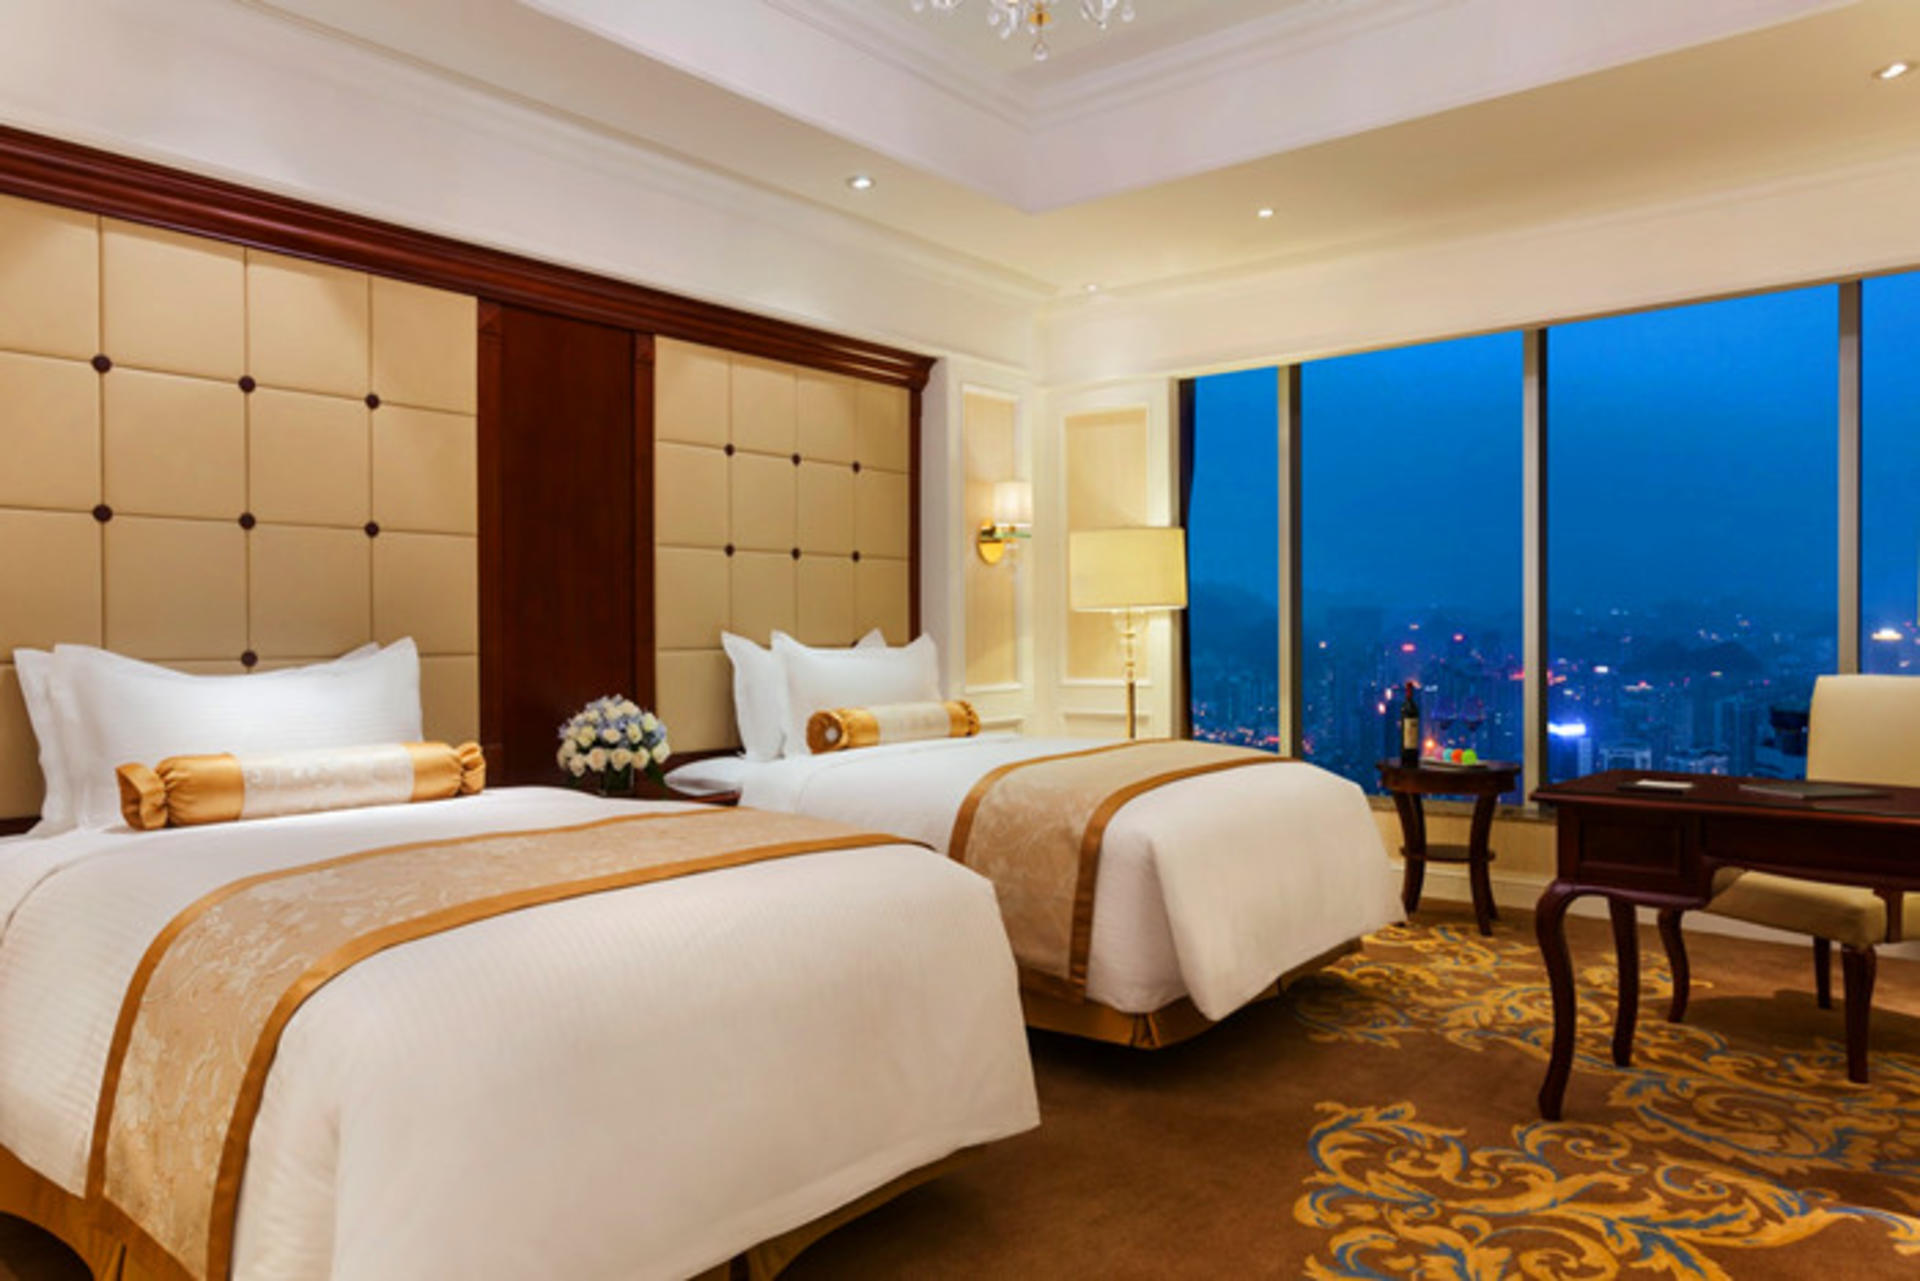 Executive Deluxe-Kempinski Guiyang Rooms